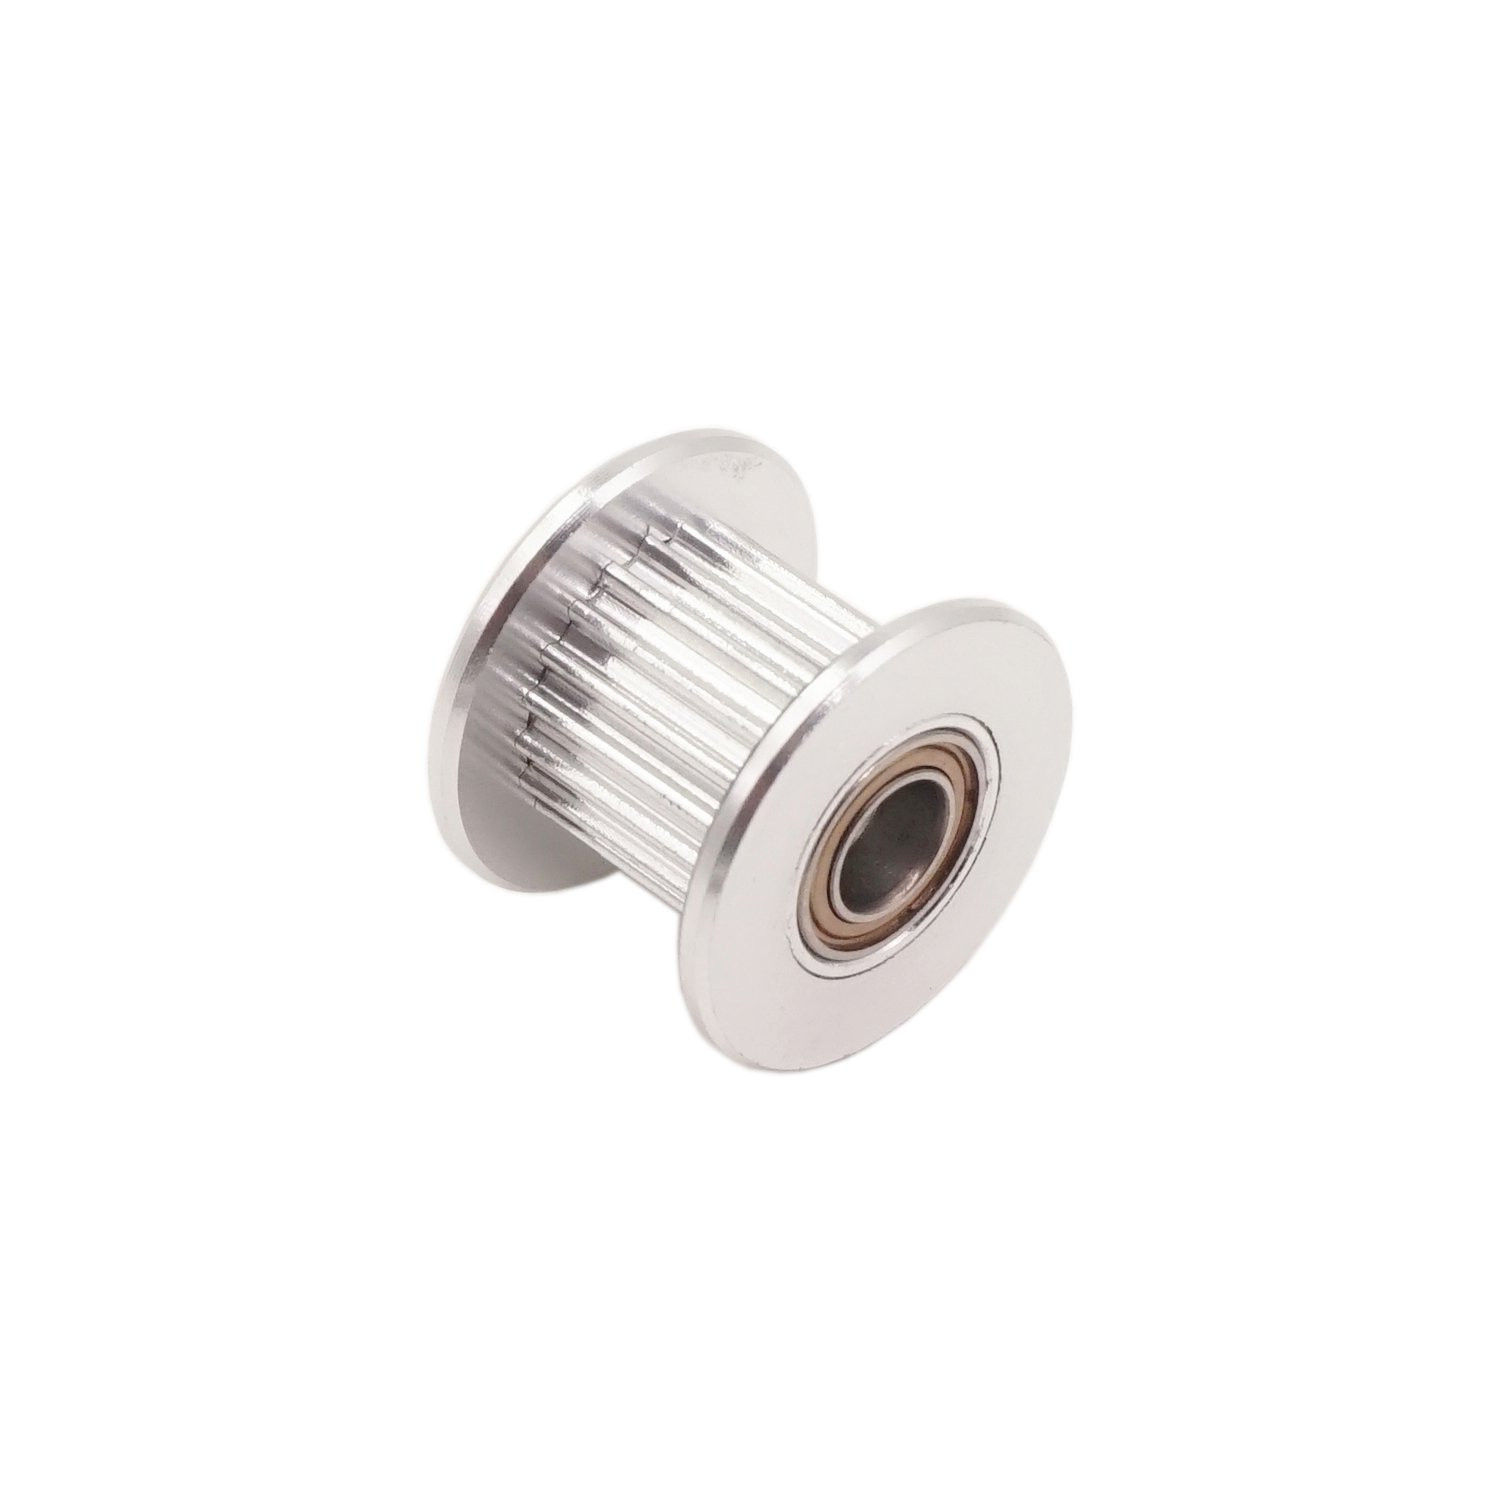 WINSINN 2GT GT2 Aluminum Timing Belt Idler Pulley 20 Teeth Tooth 5mm Bore for 3D Printer 10mm Width Timing Belt (Pack of 5Pcs) by WINSINN (Image #3)